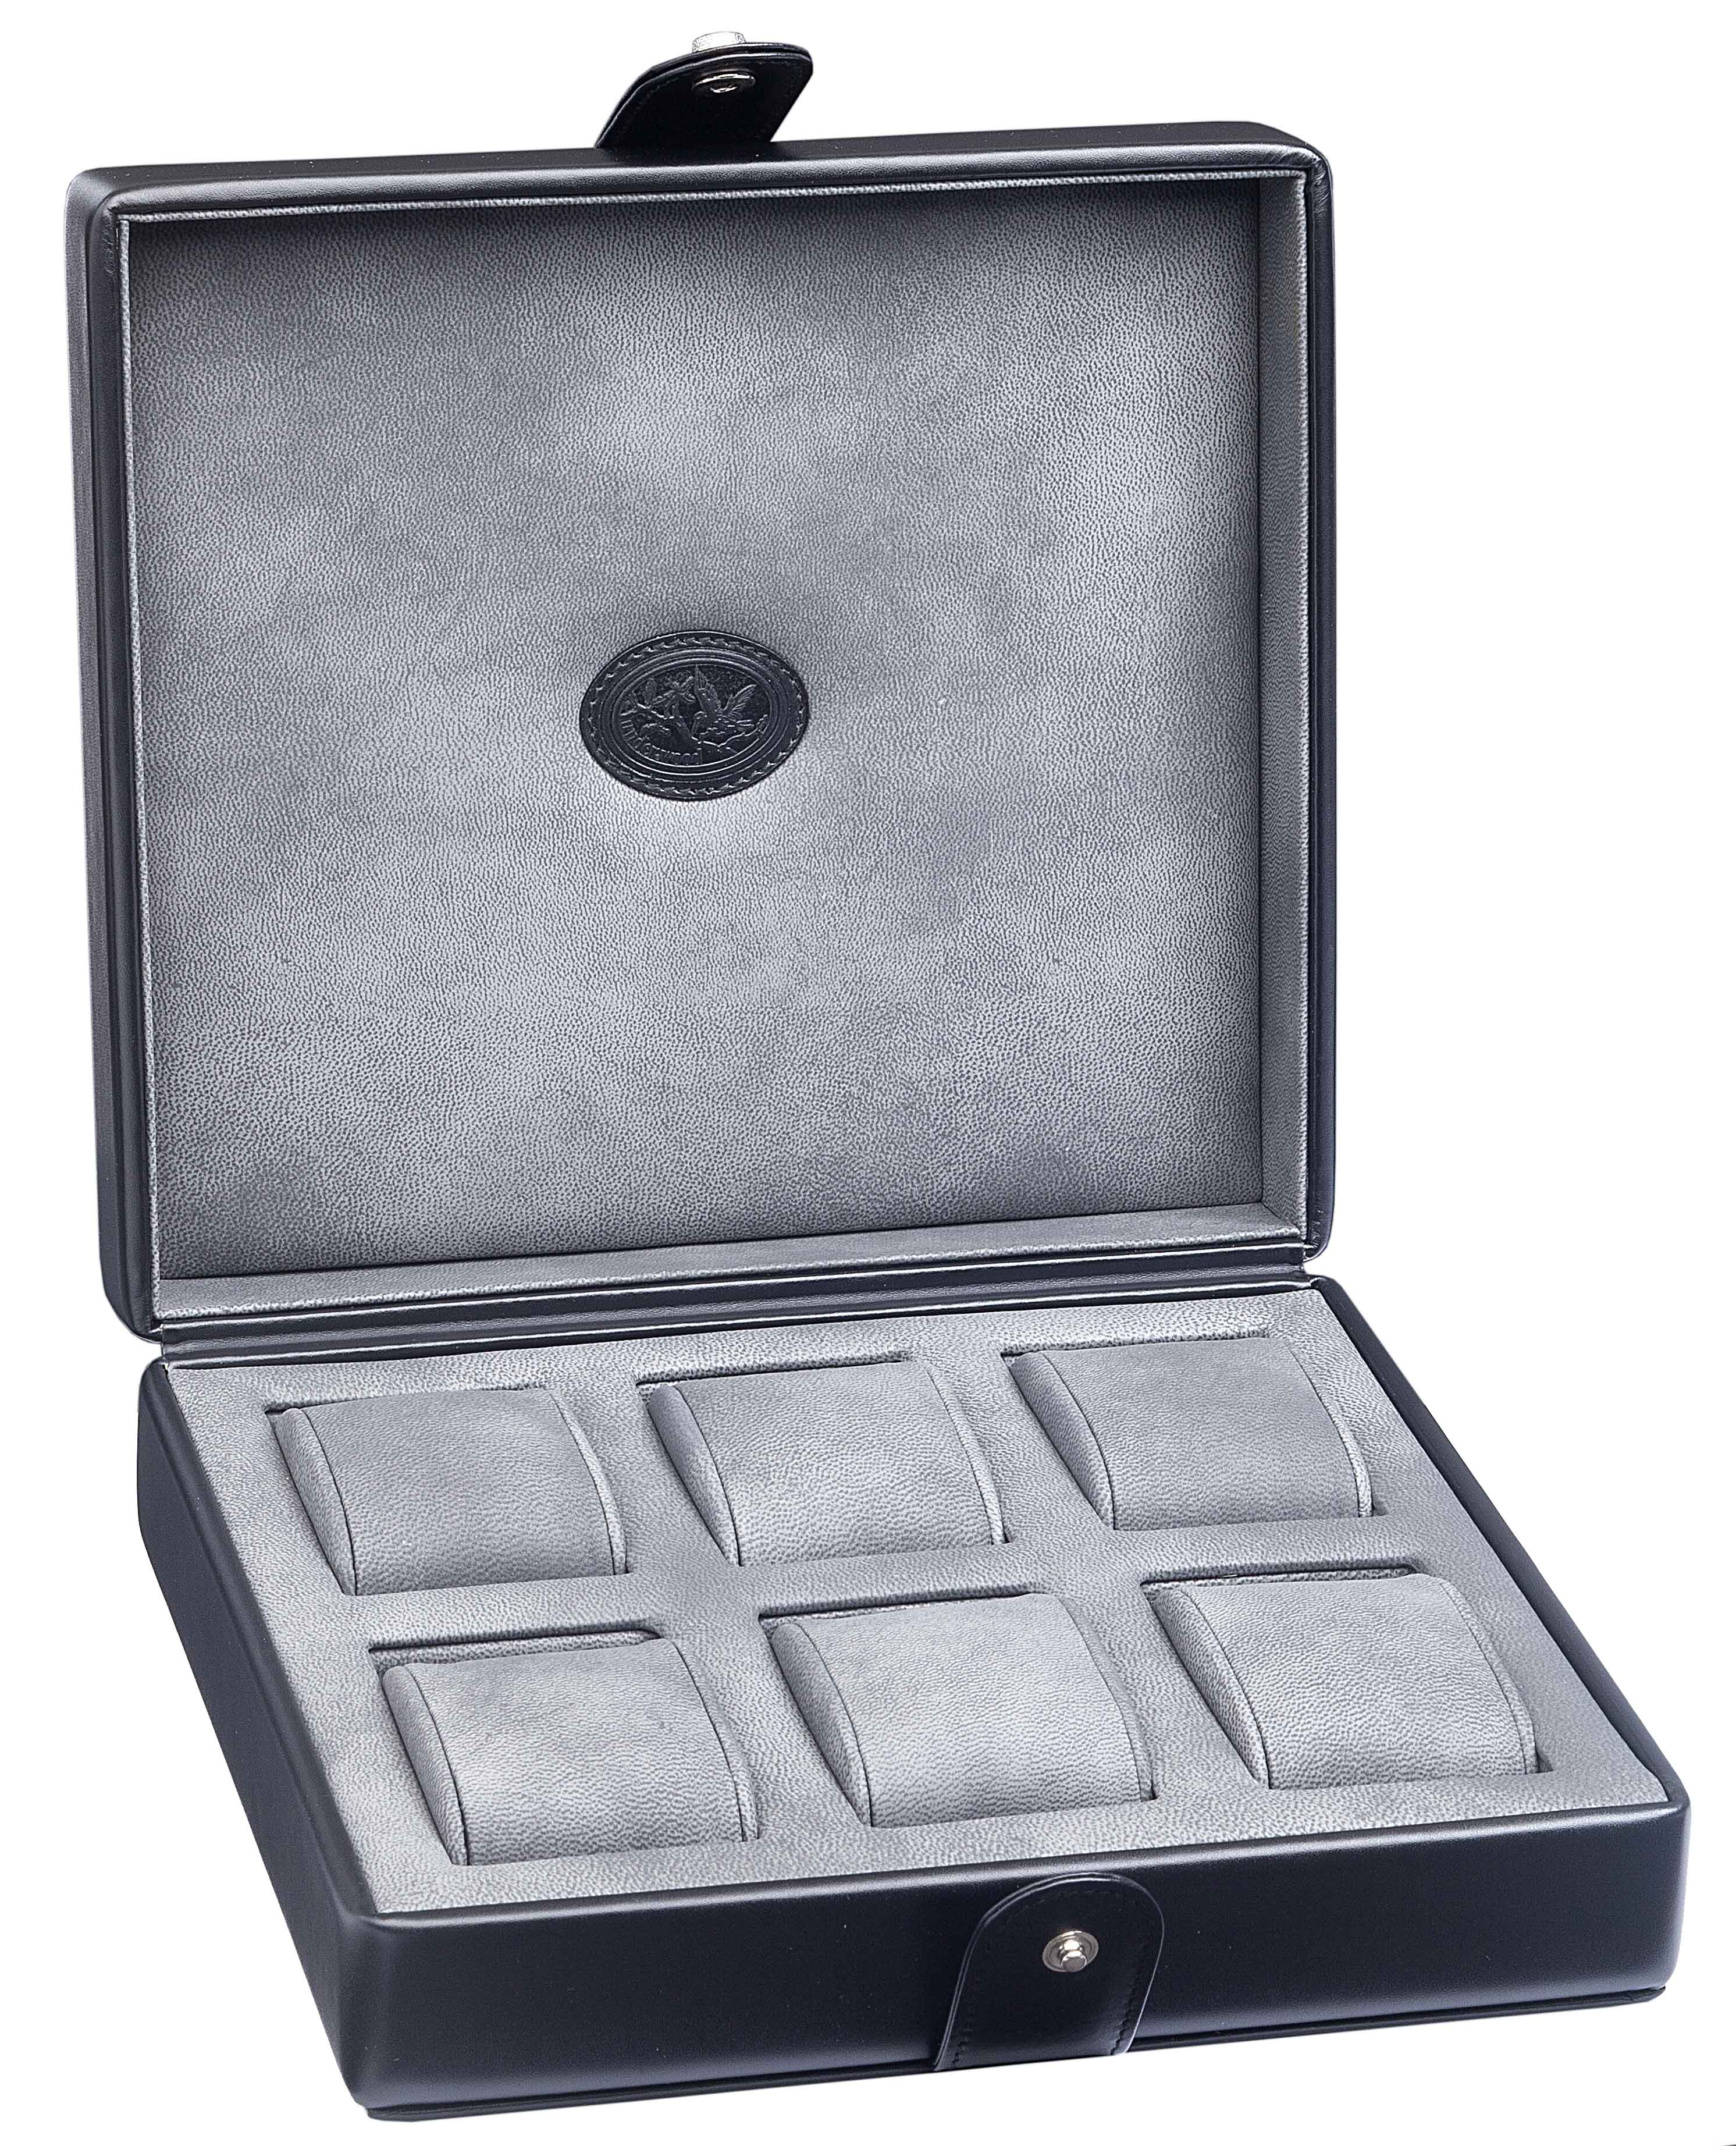 Watch case for six watches